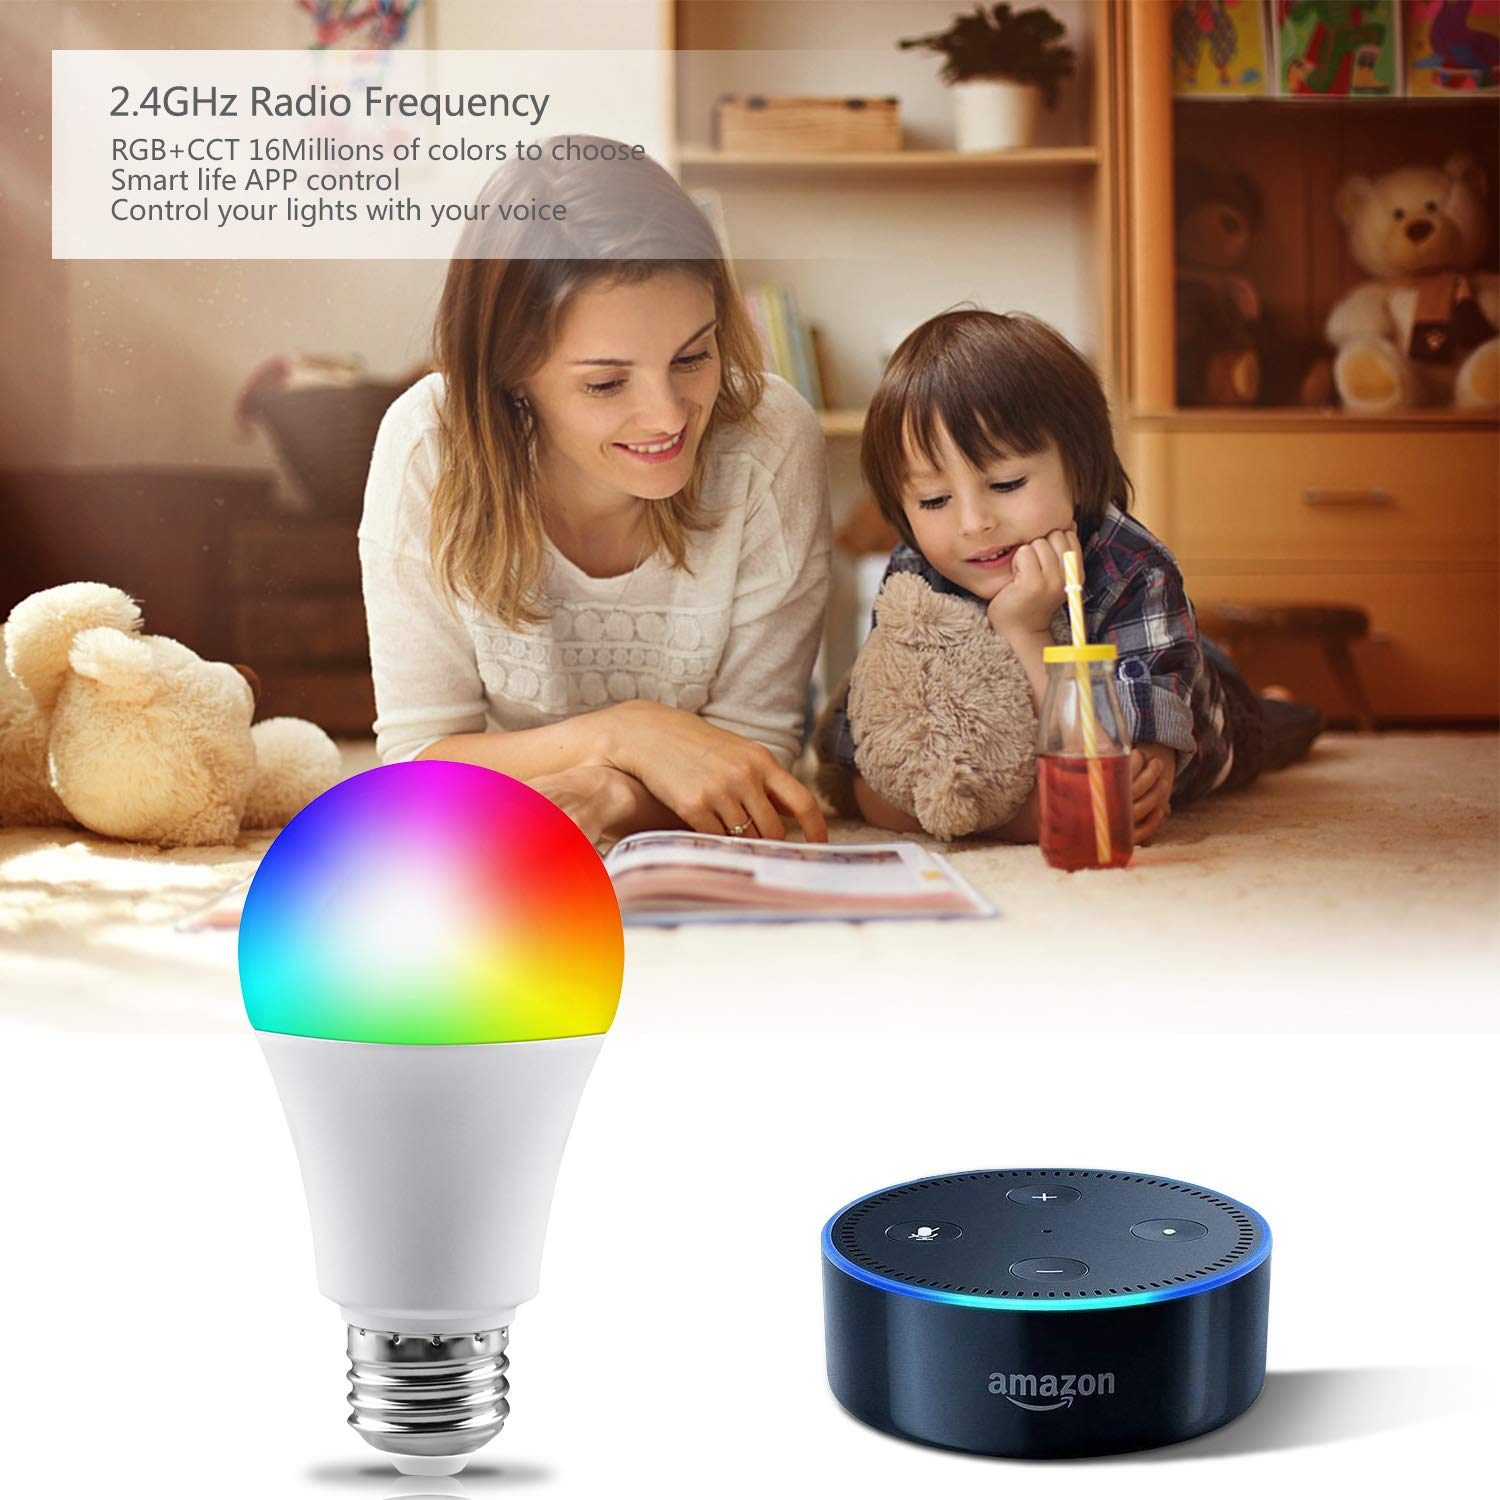 Smart Light Bulb, WiFi Smart Led Bulbs Dimmable Multicolored RGB, No Hub Required, Works with Amazon Echo Alexa and Google Home (7W 600LM) (1 Pack)